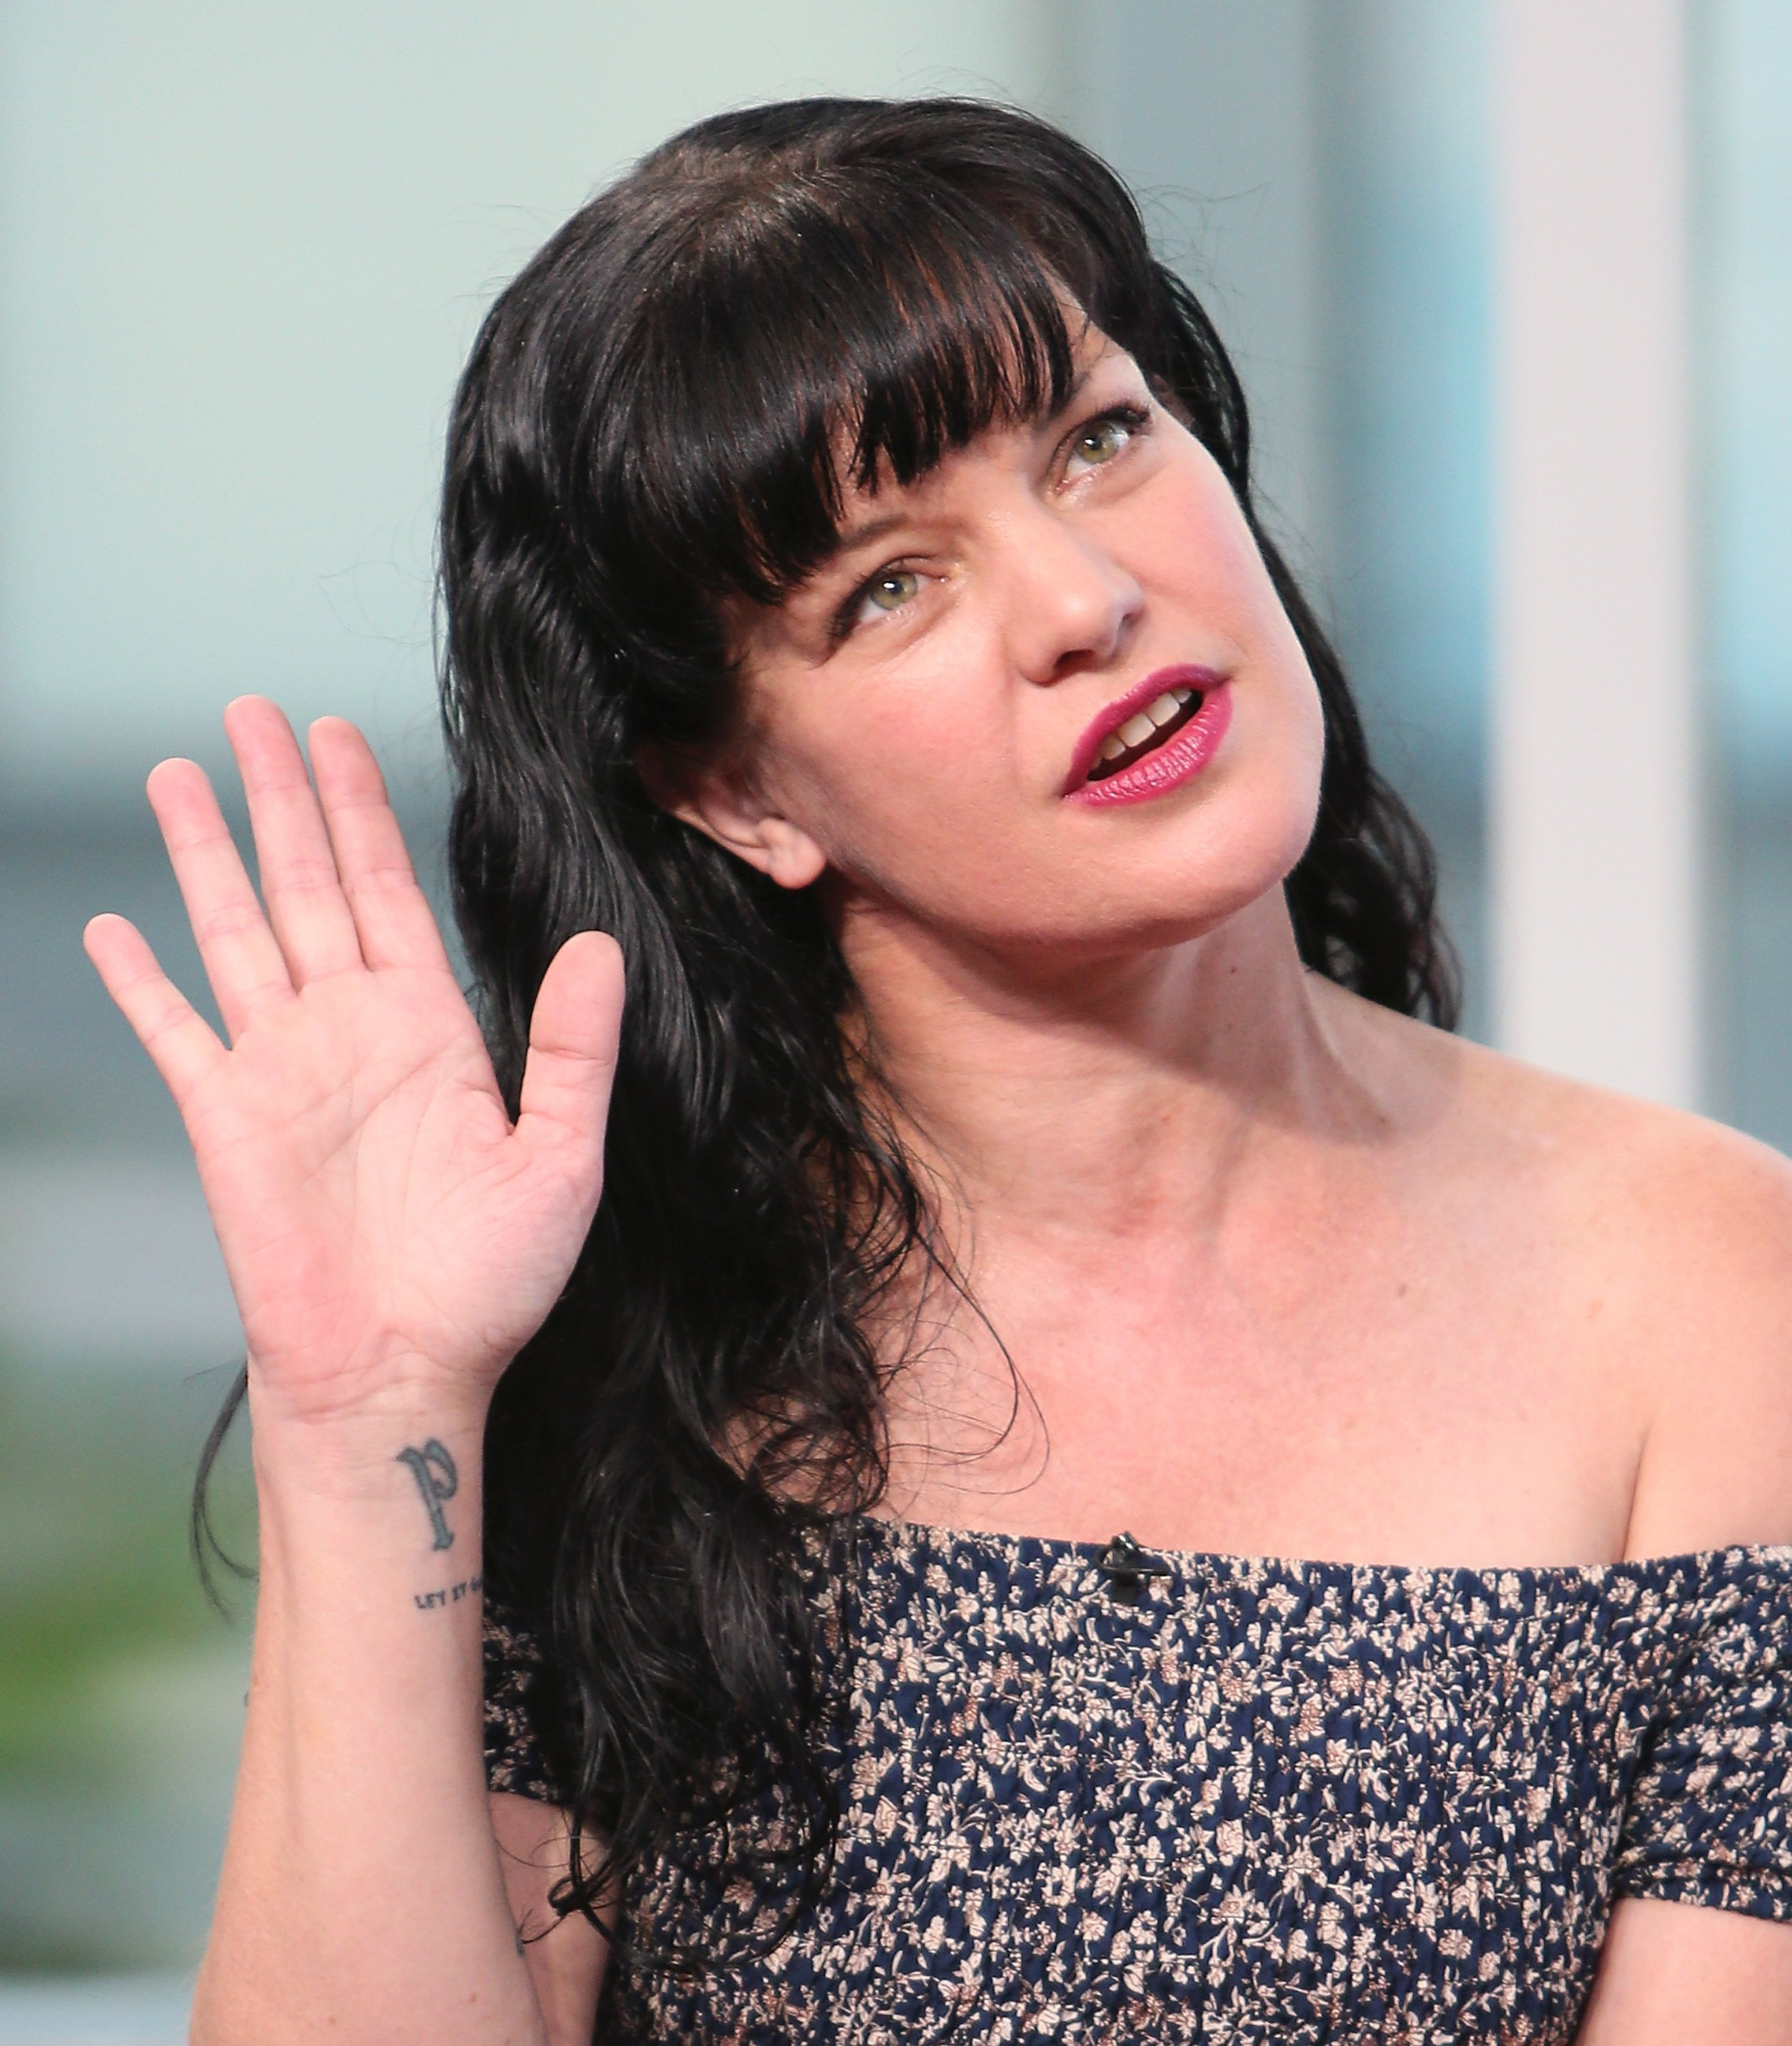 Pauley Perrette, actress | Photo: Getty Images